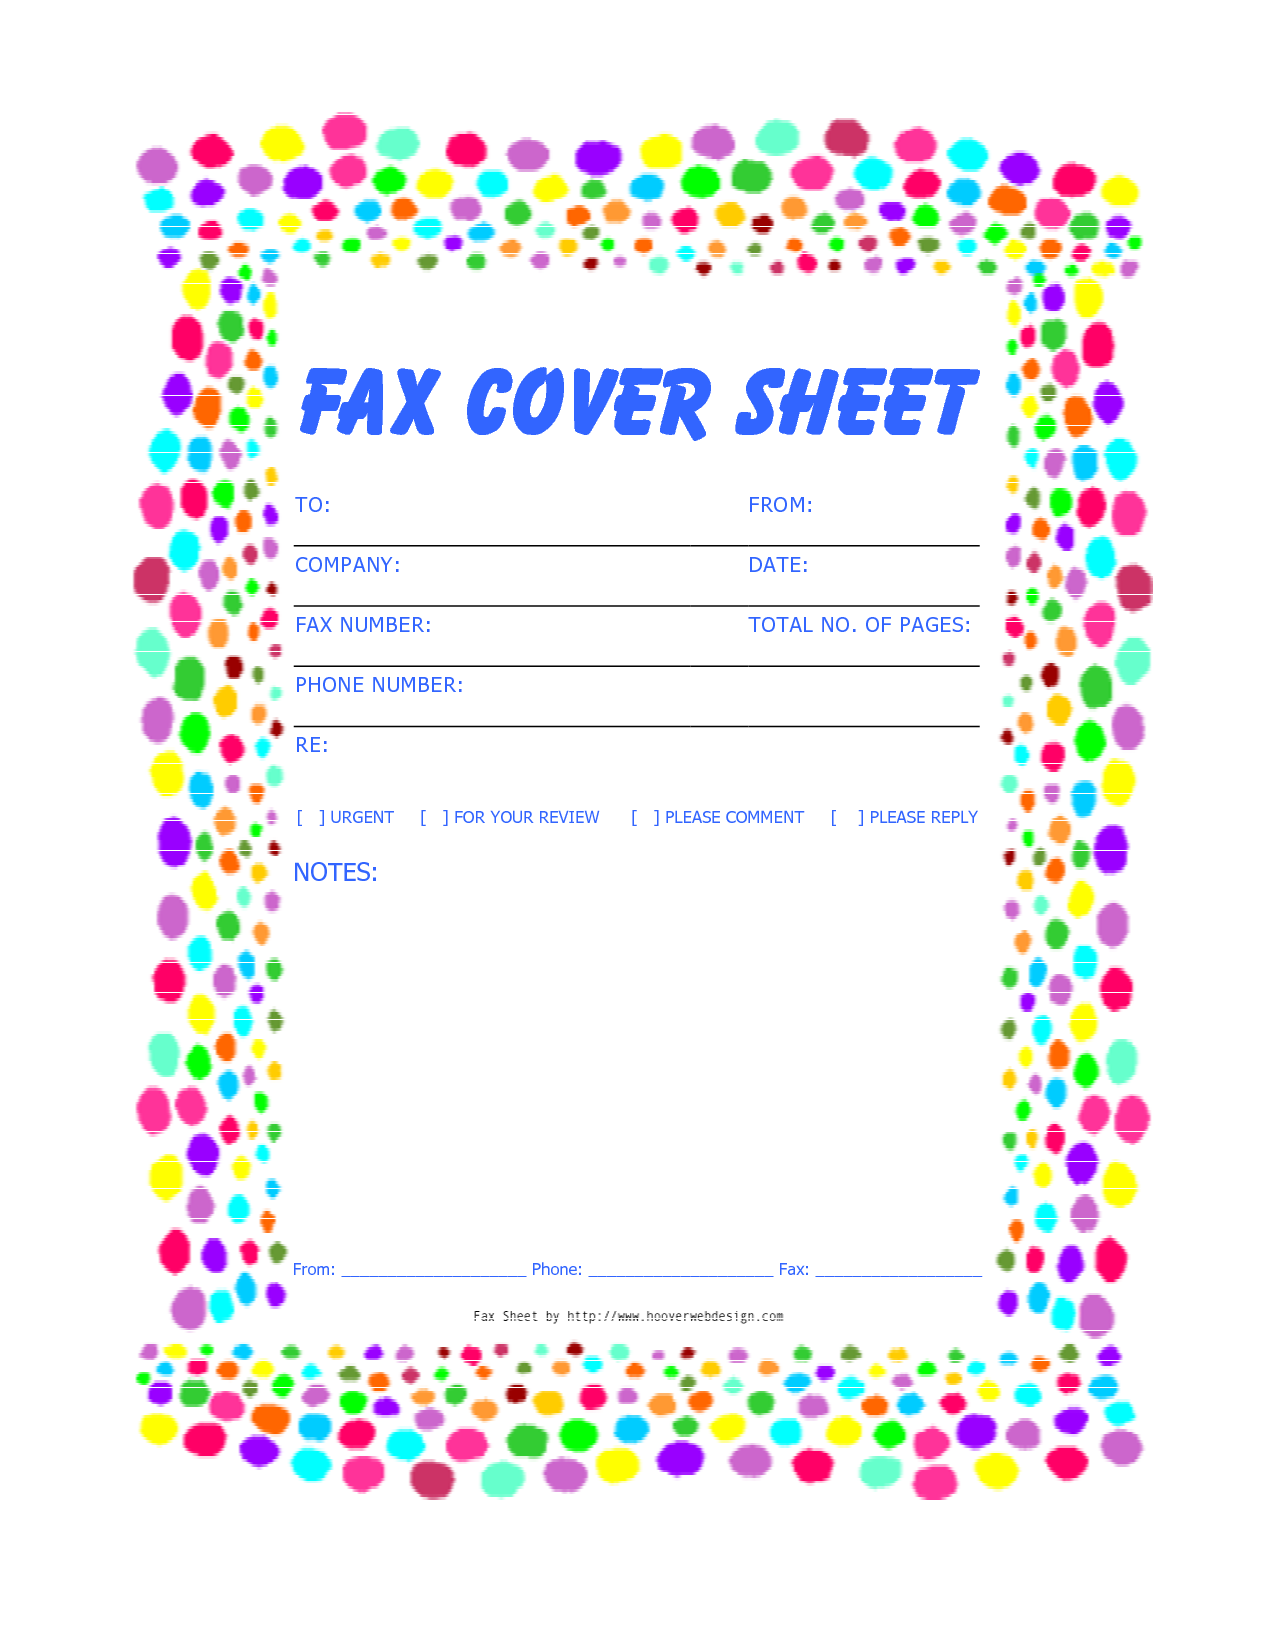 Fax Cover Sheet Blank Template